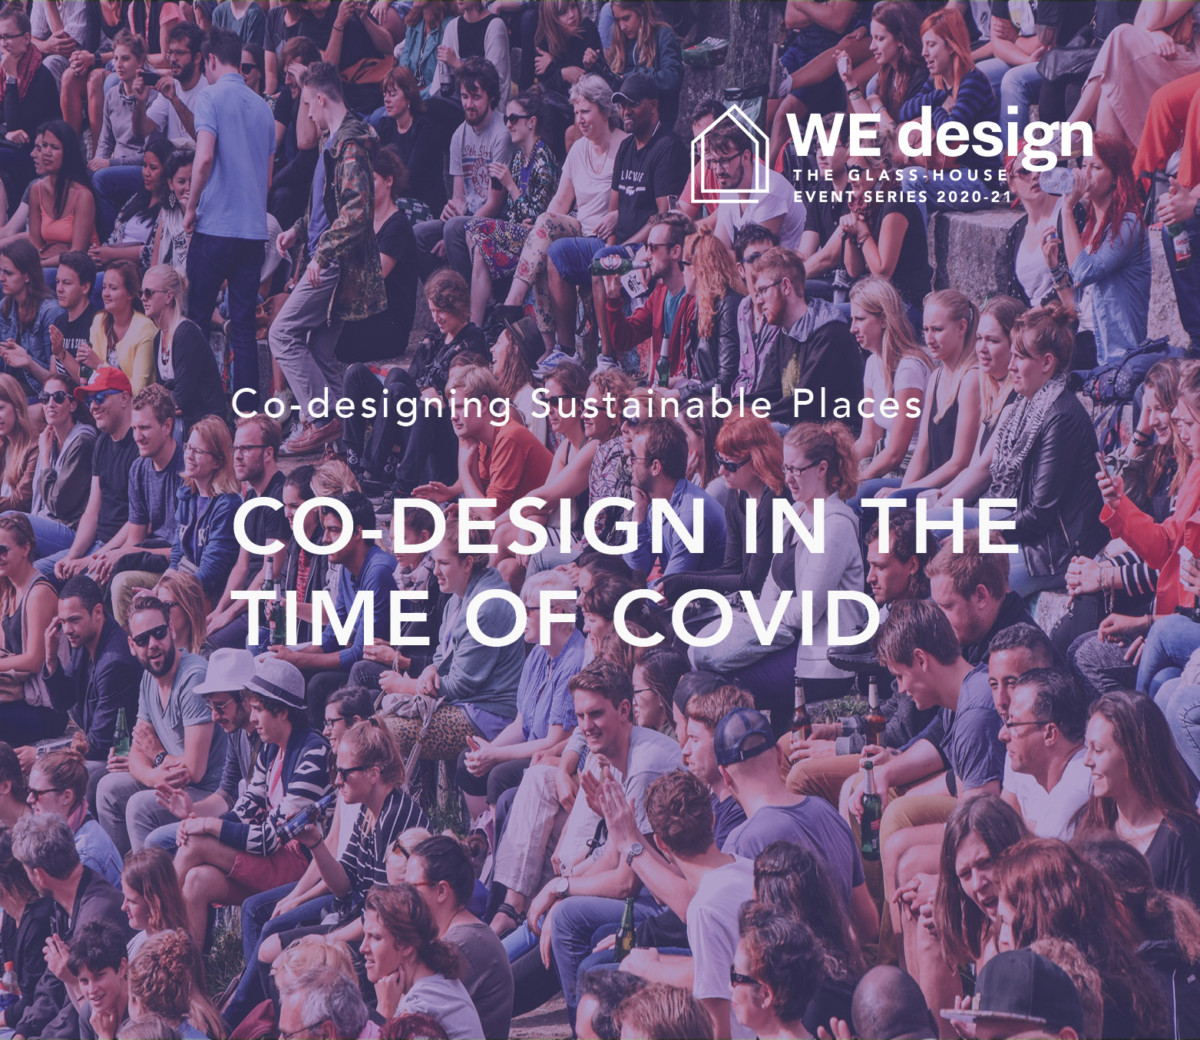 Co-design in the Time of Covid